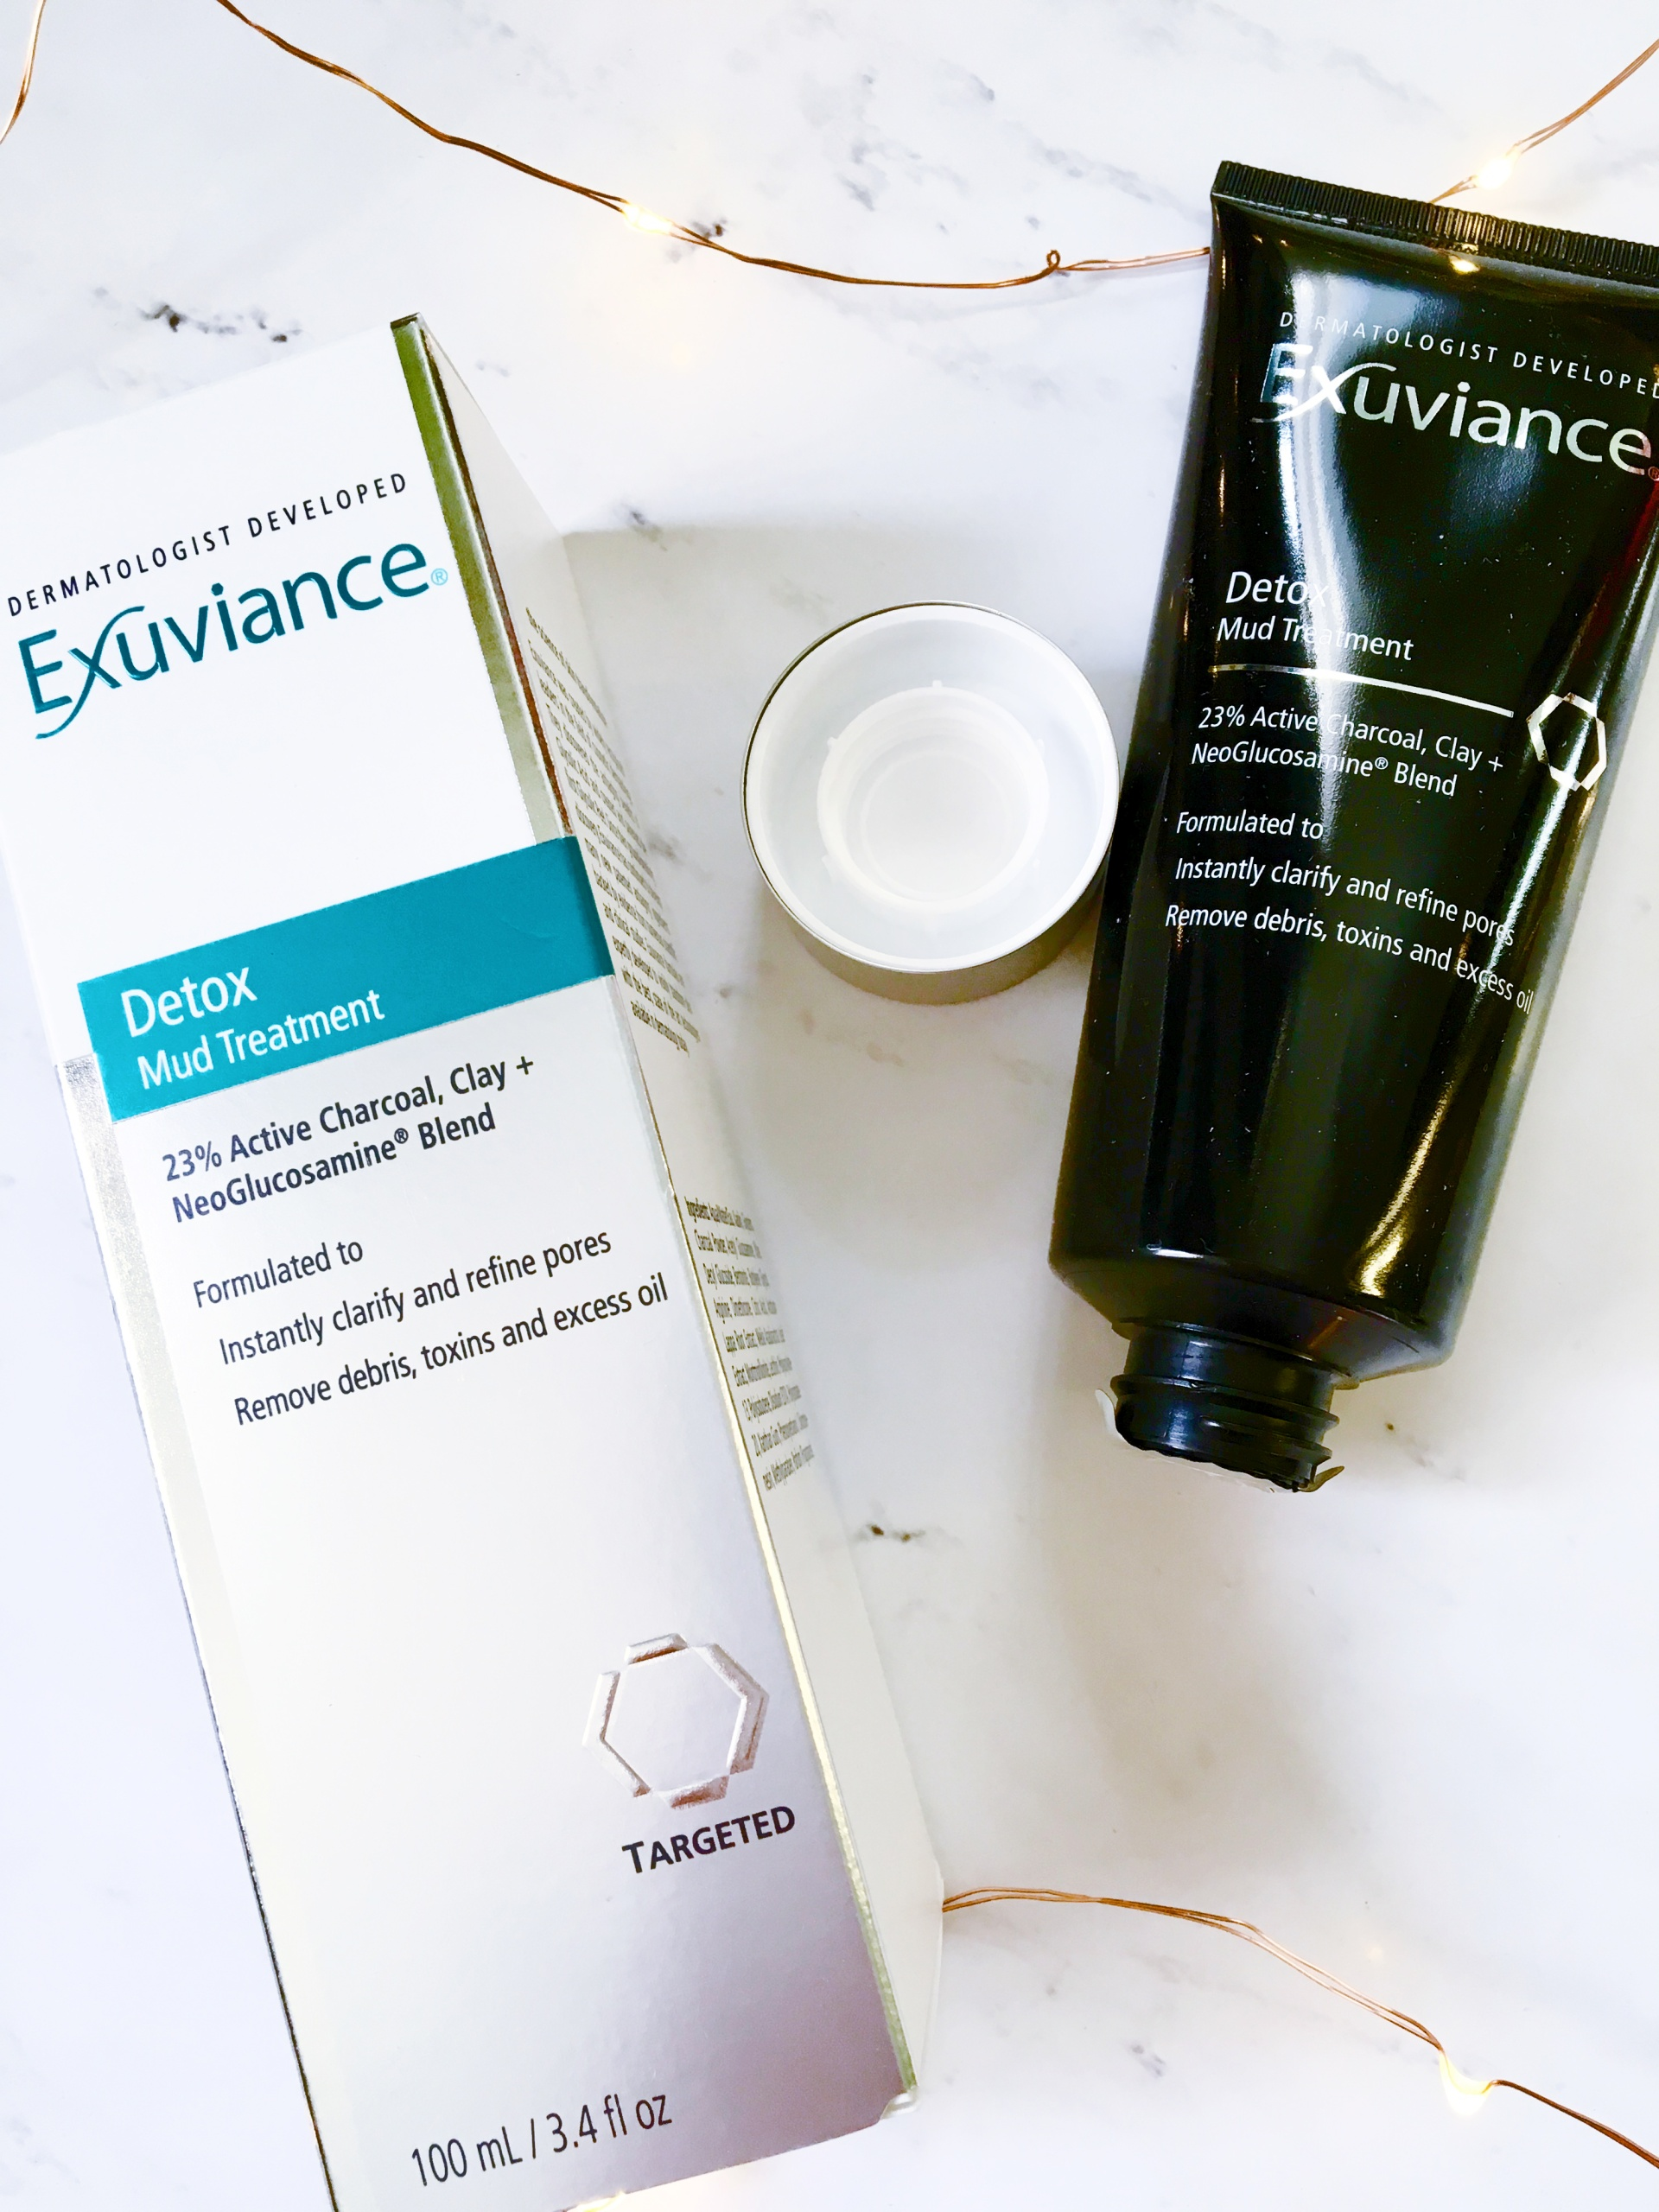 Exuviance Detox Mud Treatment | Product Review